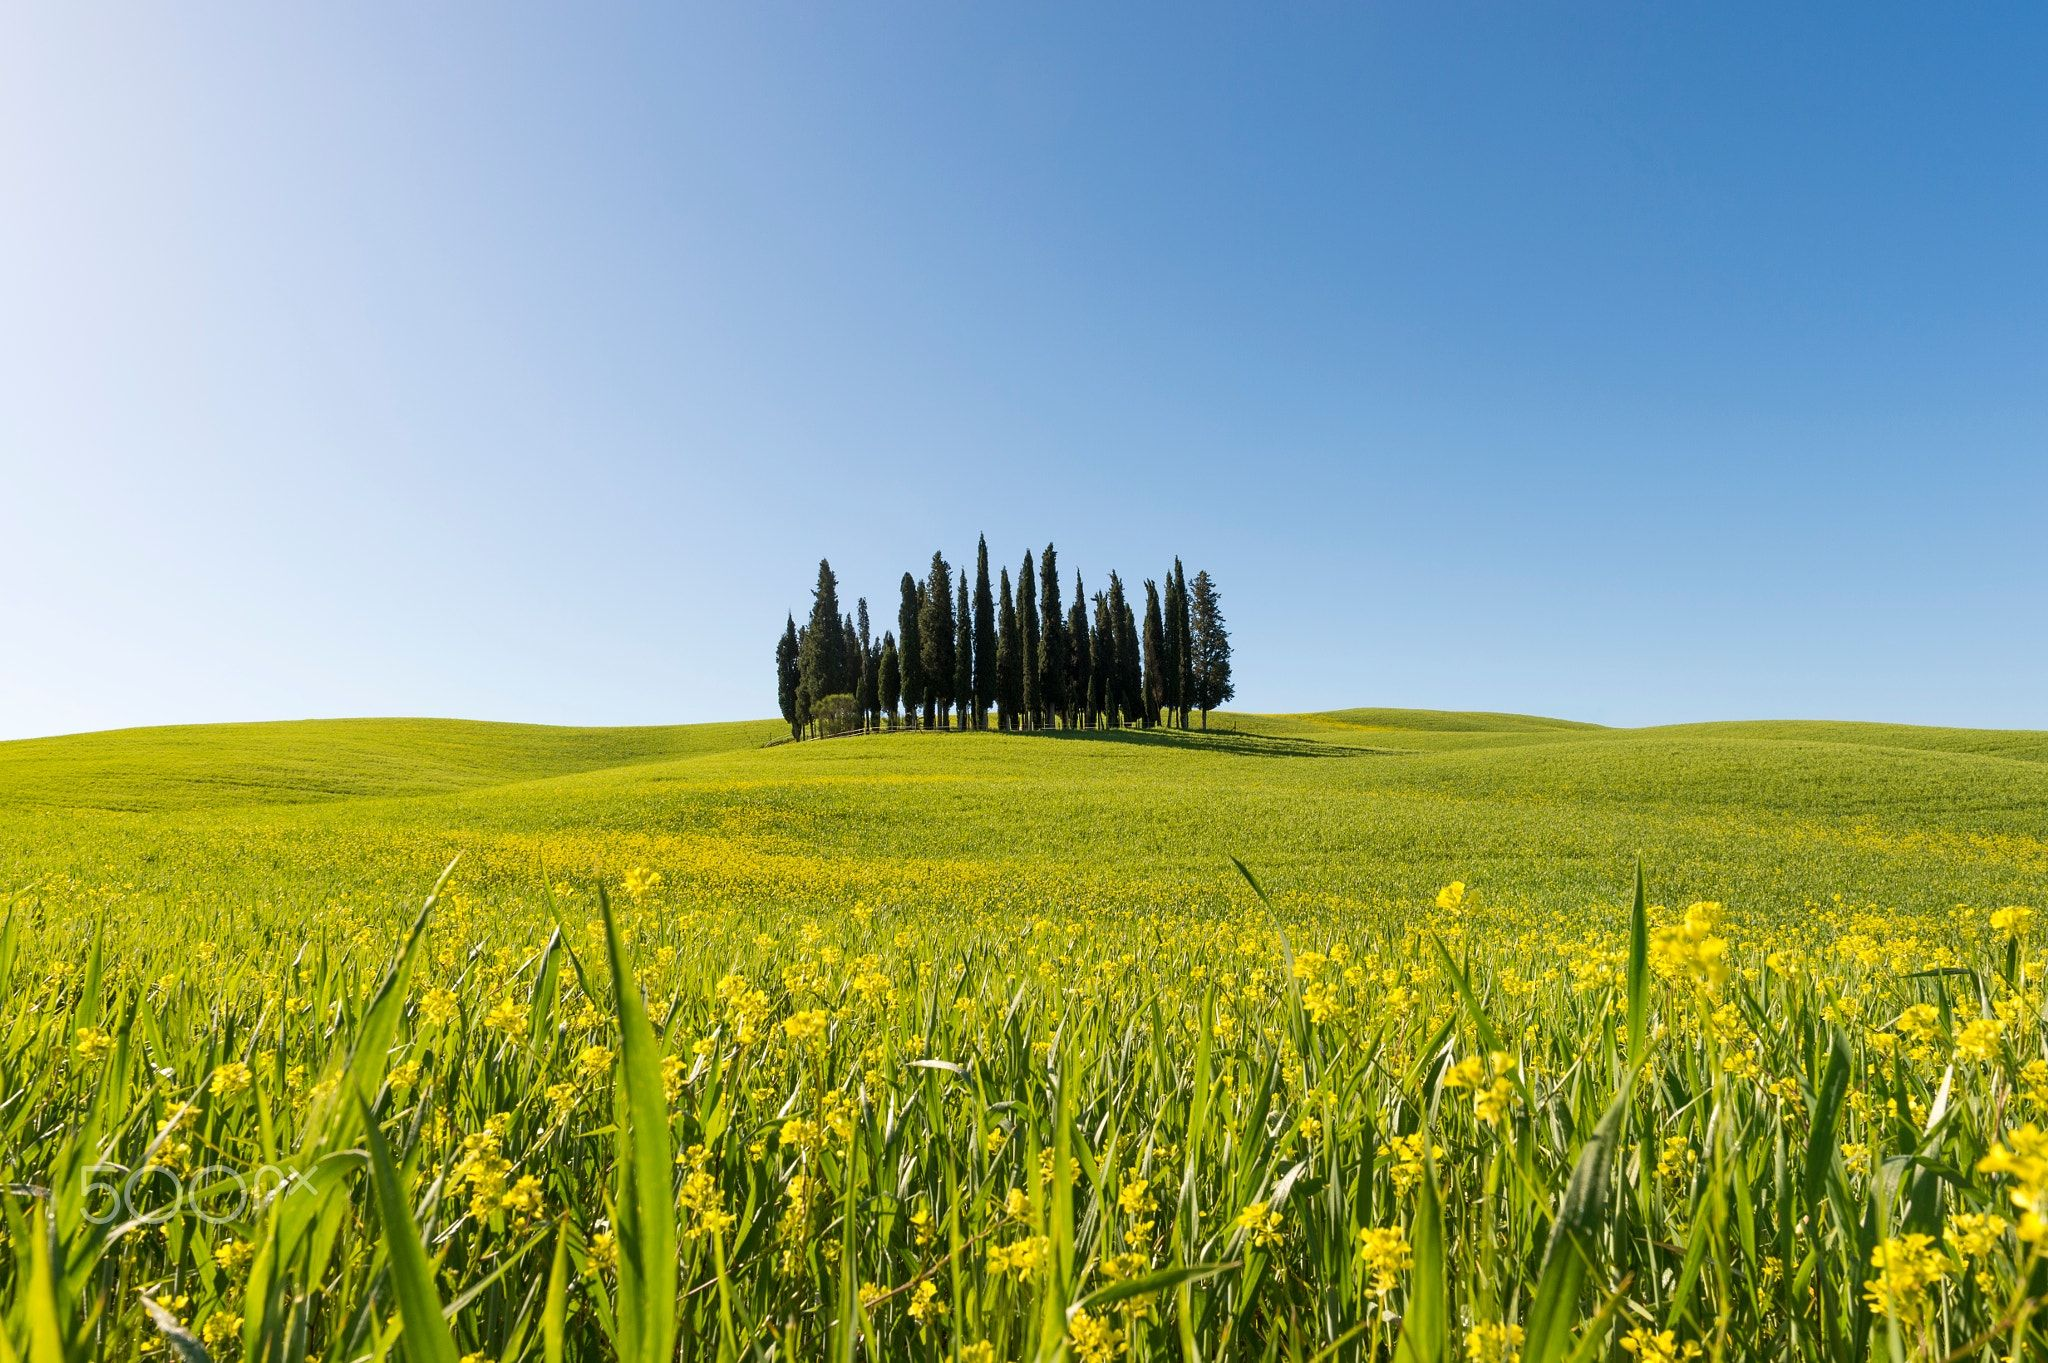 Fiori Gialli Toscana.Cypress Cypress Trees In A Green Meadow With Yellow Flowers In